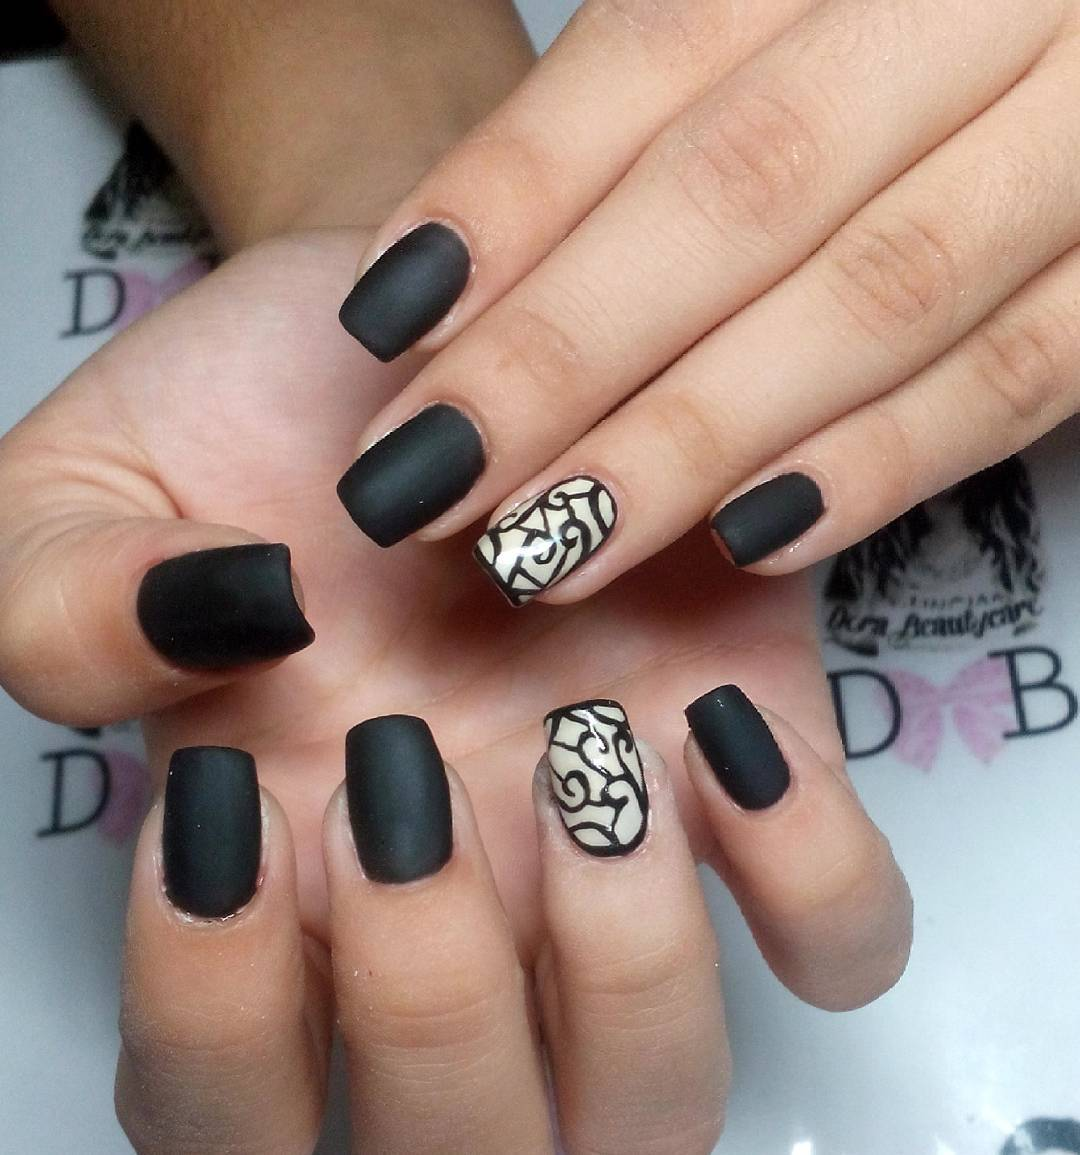 29+ Black Acrylic Nail Art, Designs, Ideas | Design Trends - Premium ...